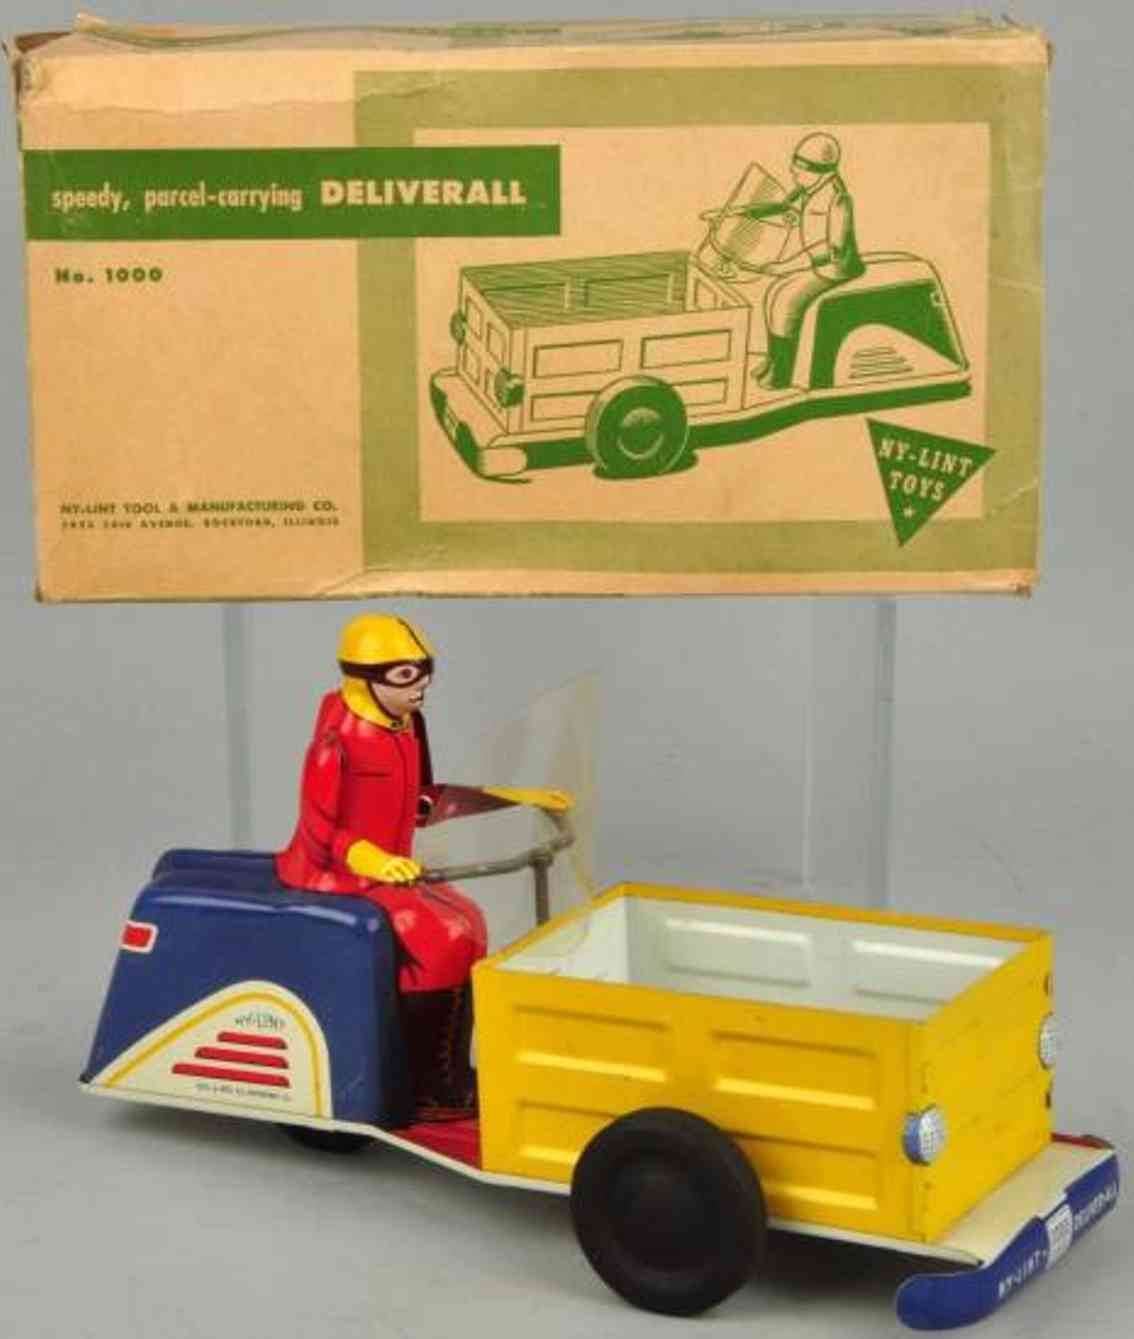 ny-lint co 1000 tin toy motorcycle deliver-all with wind-up